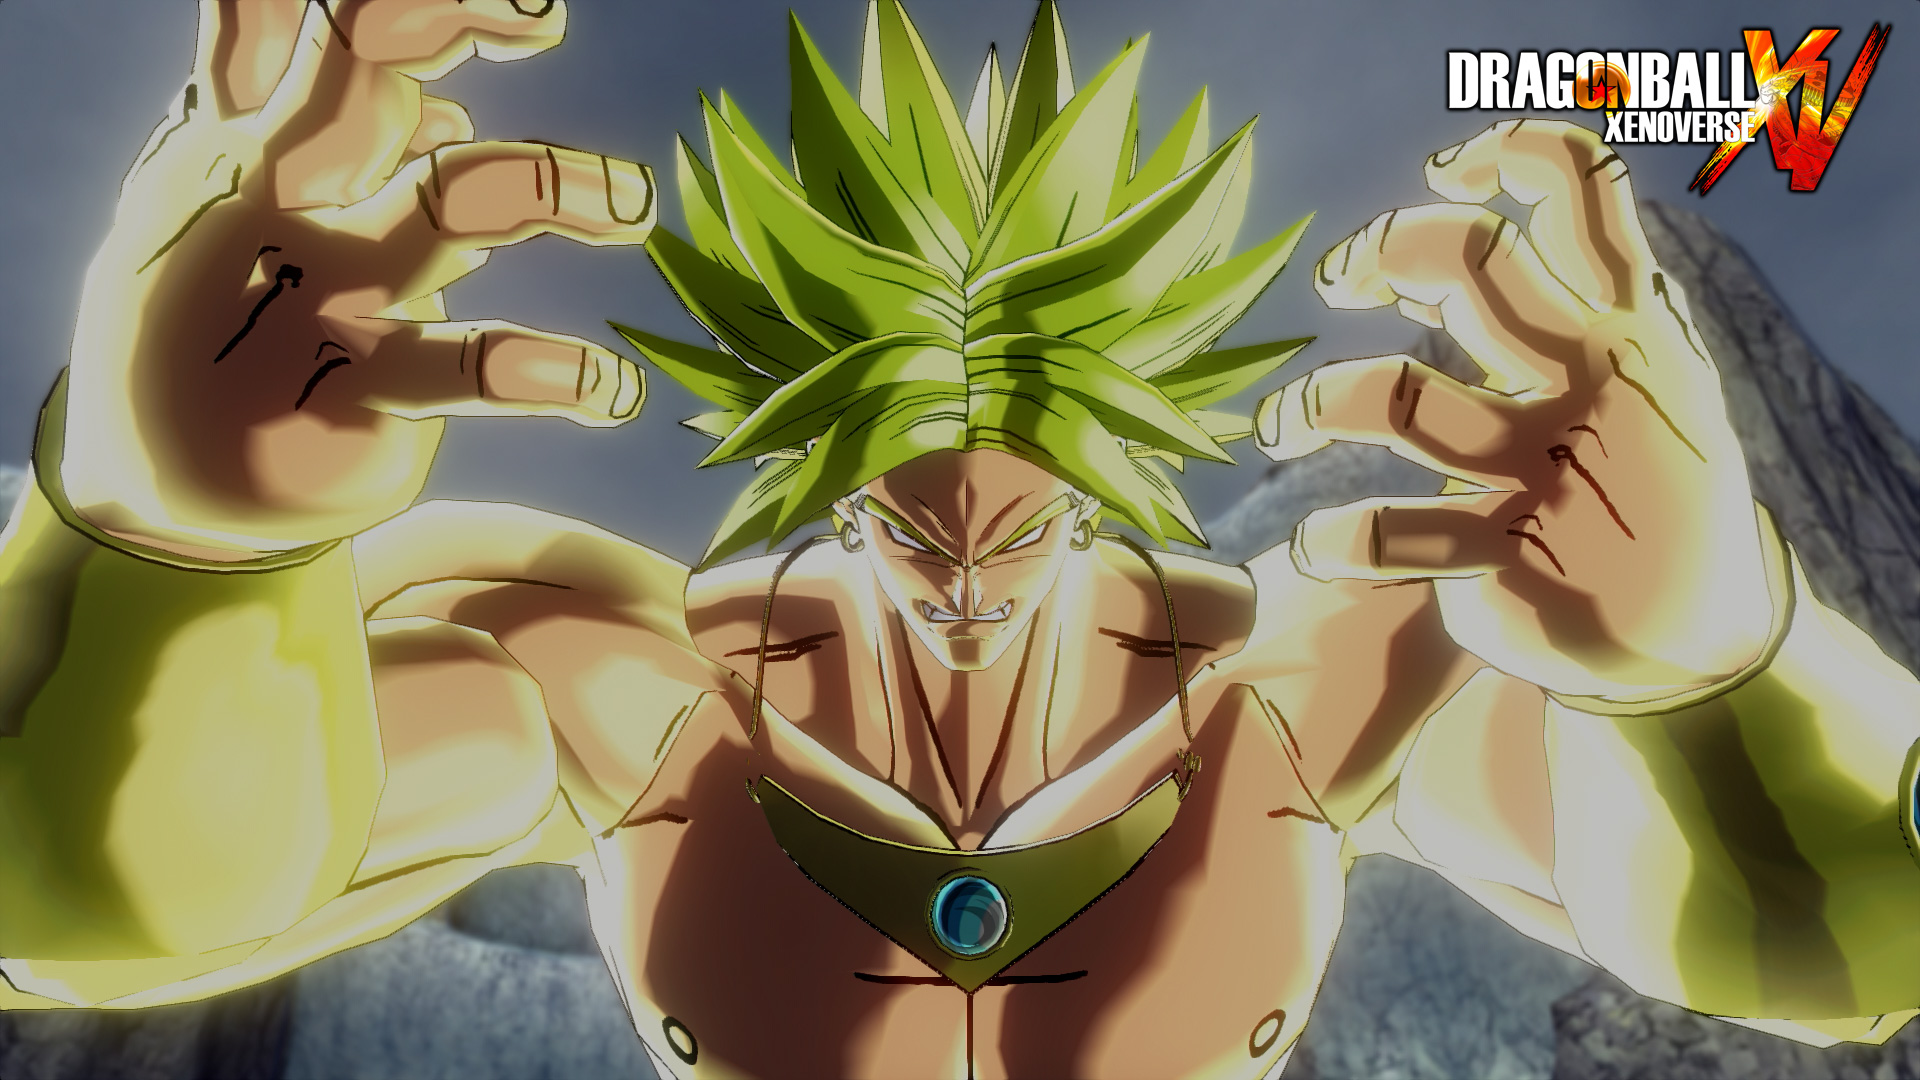 Dragon-Ball-Xenoverse-Evil Broly Screenshot 1